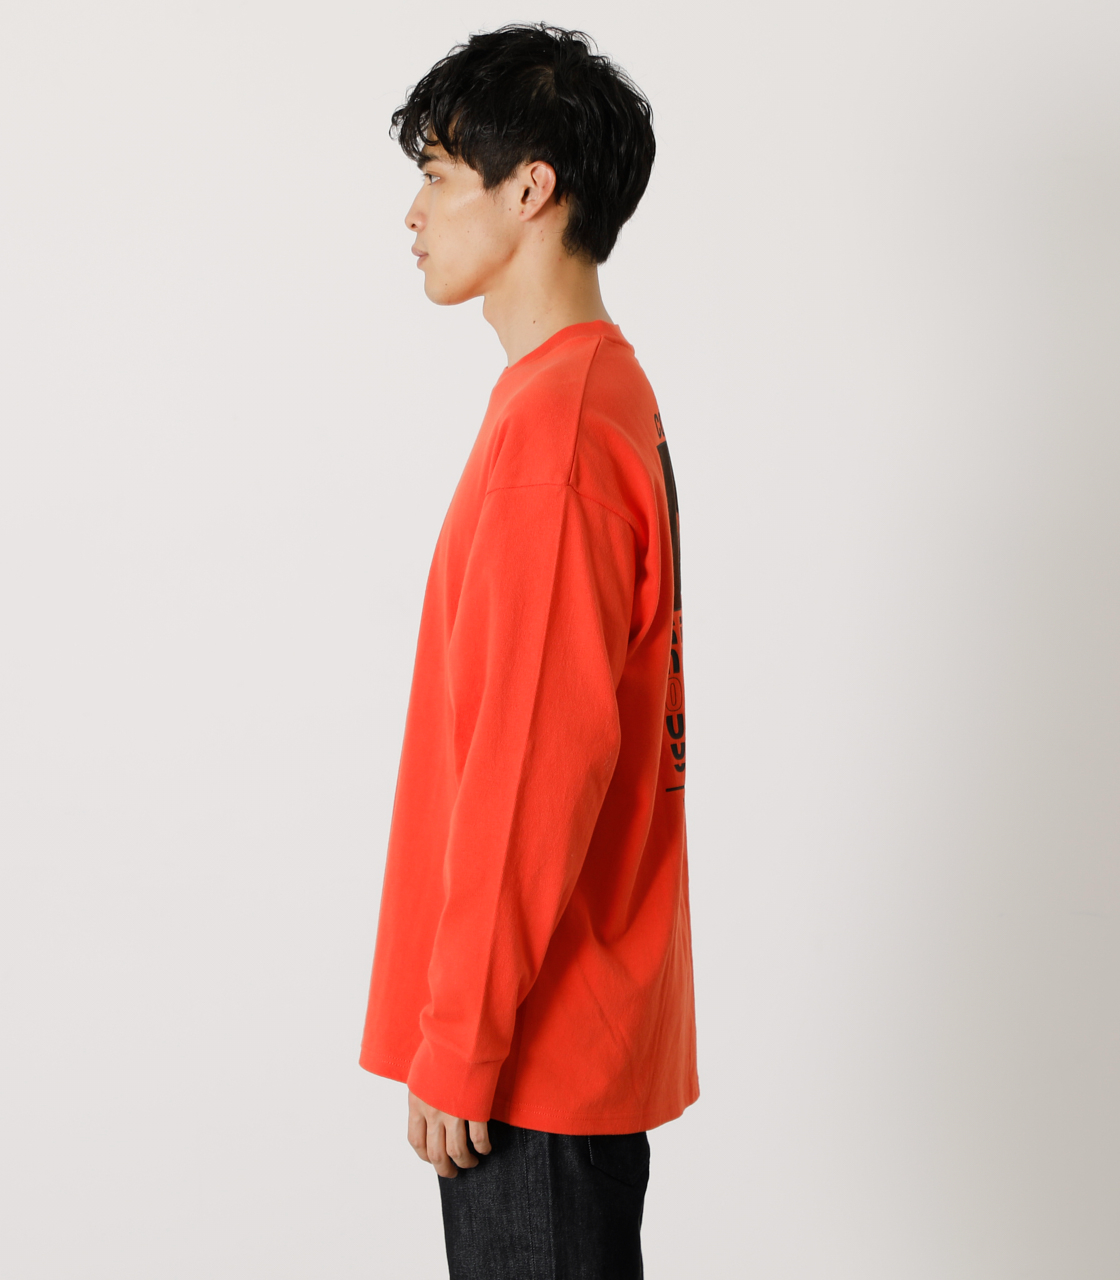 ONE'S HIGH LONG TEE/ワンズハイロングTシャツ 詳細画像 D/ORG 6